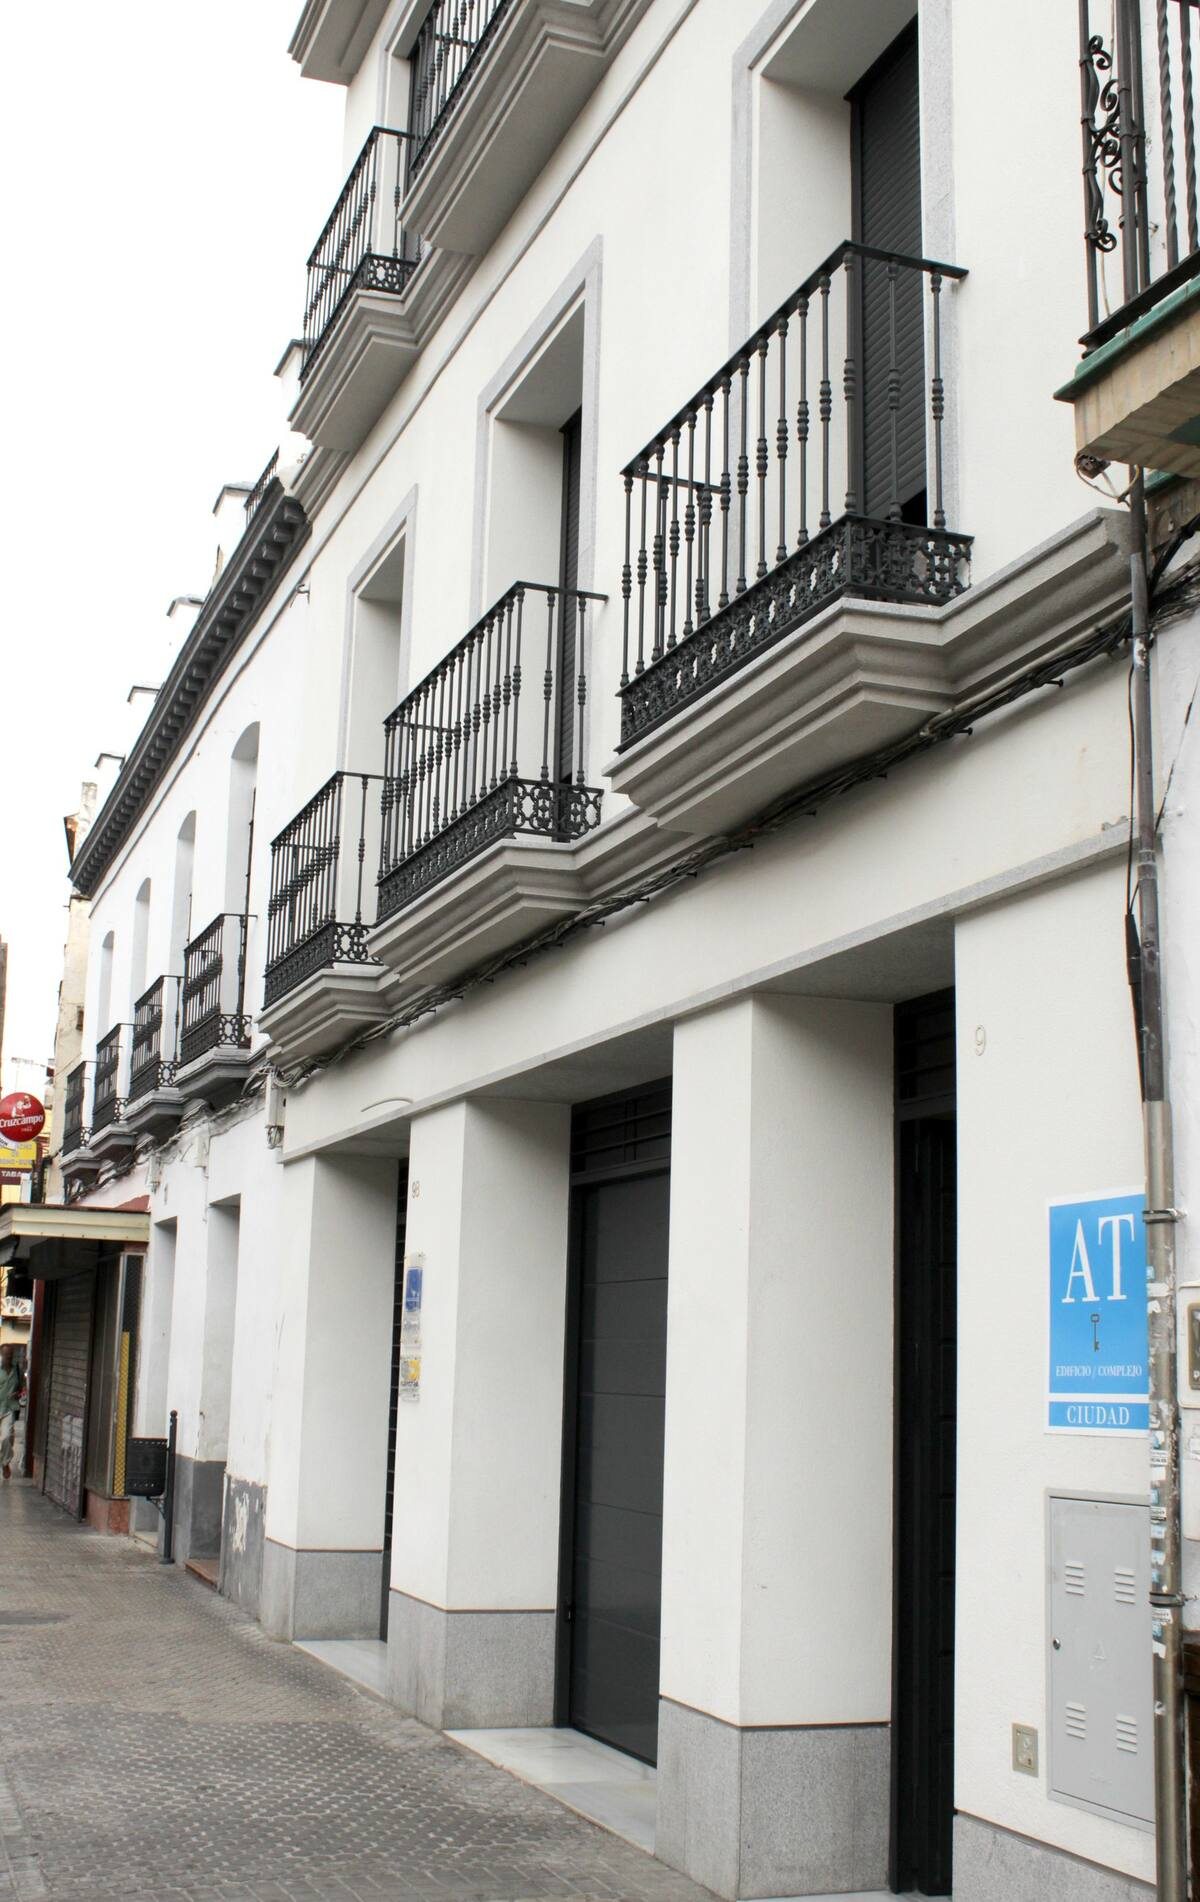 Moderno 2 - Comfortable apartment in Sevilla for expats